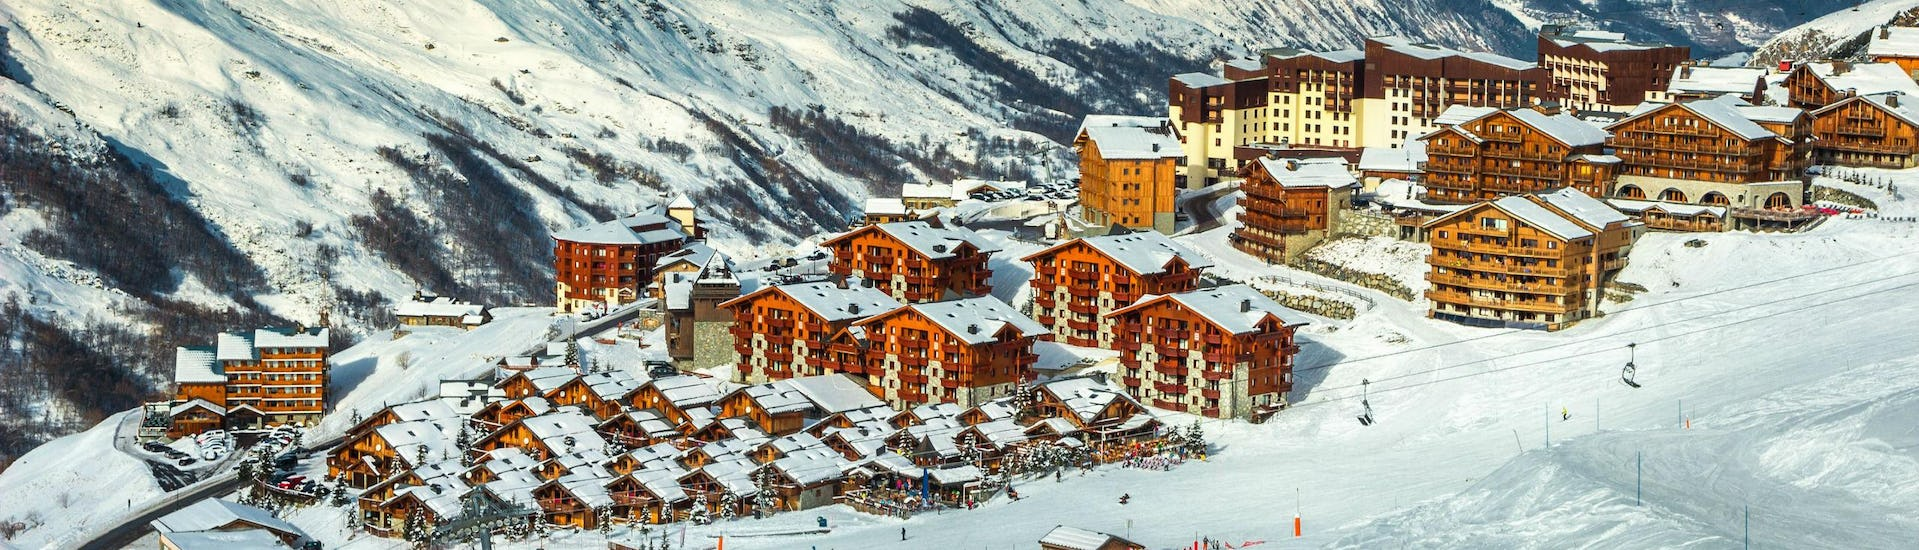 A view of the French ski resort of Les Menuires in the Les Trois Vallées ski region, where local ski schools offer ski lessons for snow sports enthusiasts who want to learn to ski.